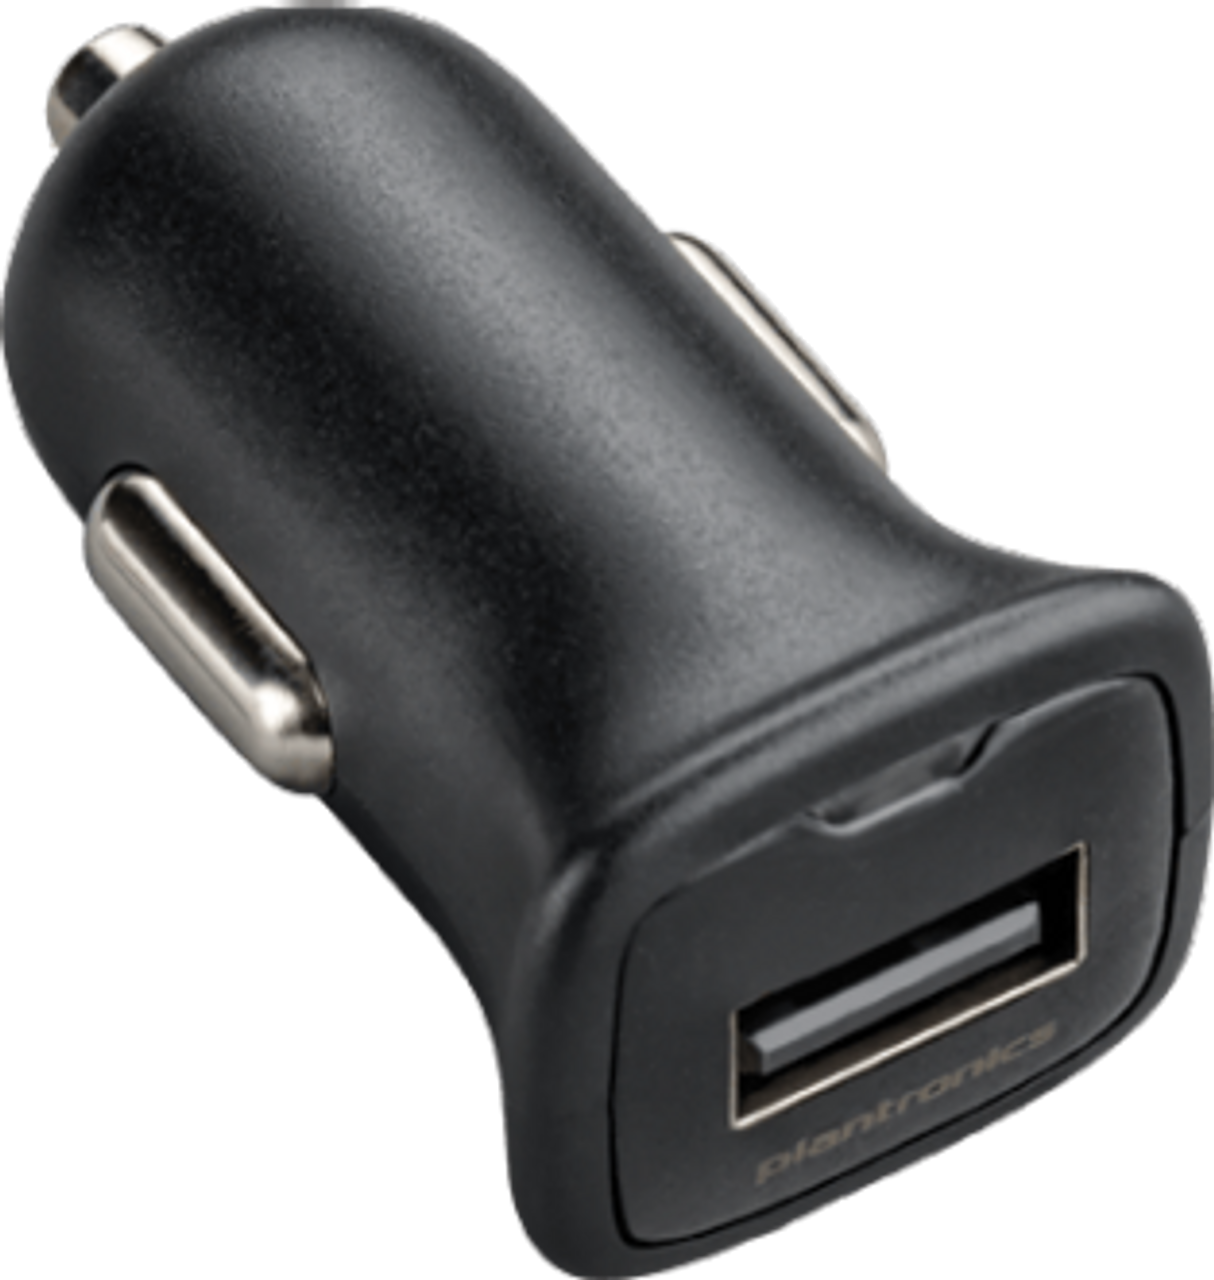 Plantronics Usb Car Charger Compatible With Voyager 5200 Voyager Edge Voyager Legend Uc And Other Mobile Devices 89110 01